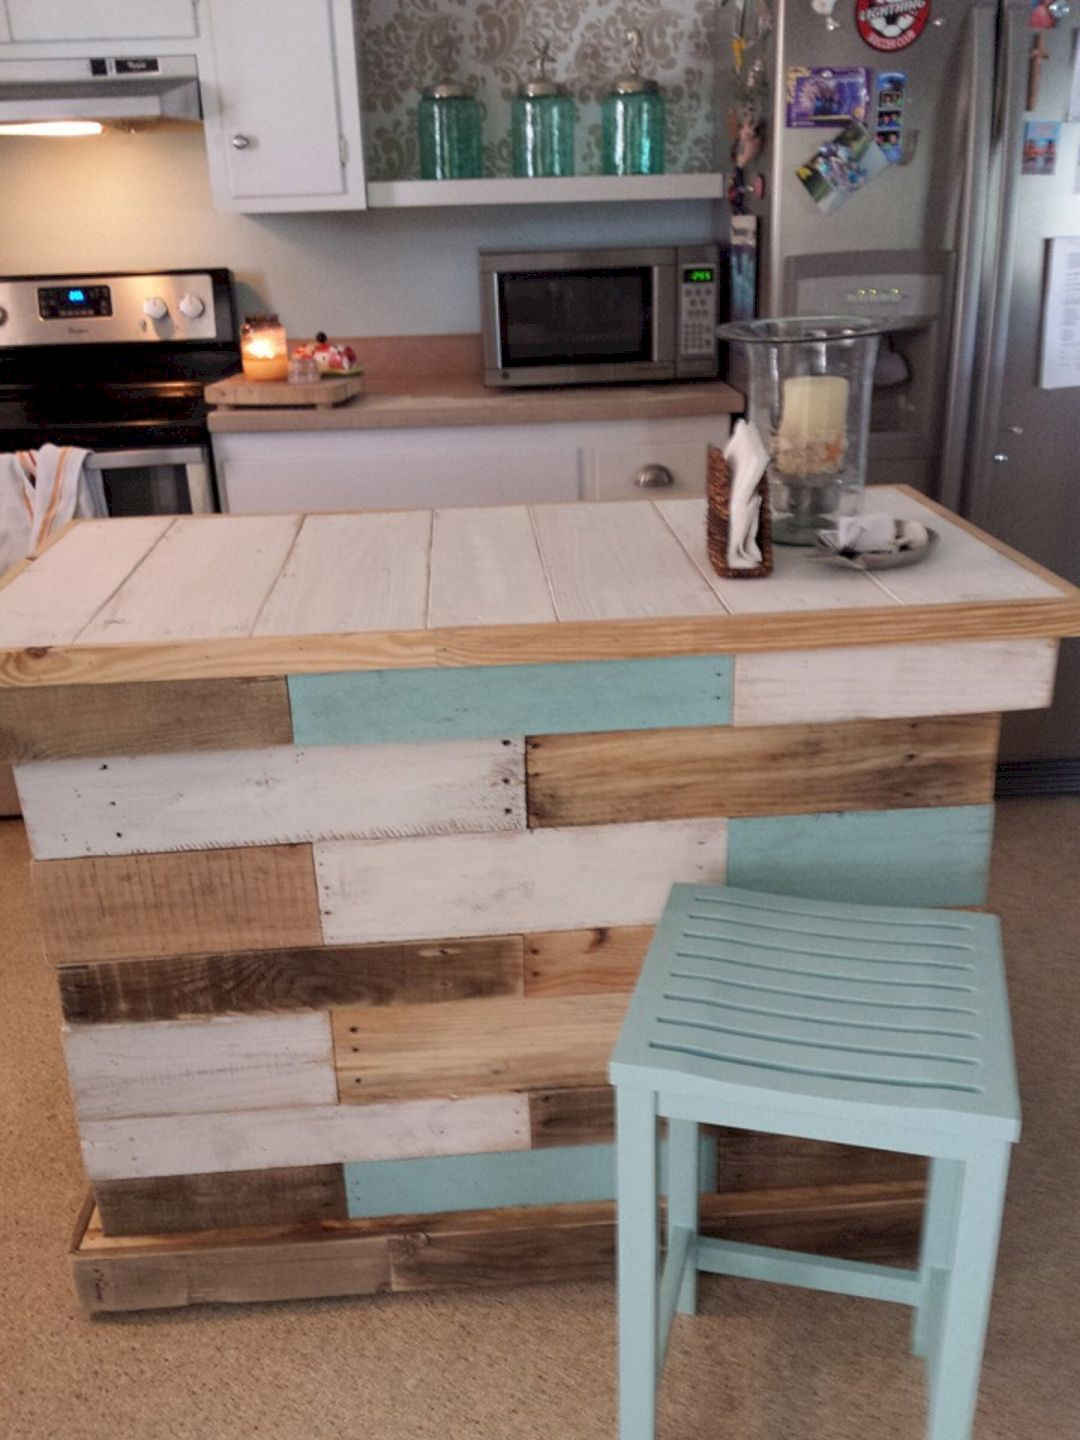 16 Stunning DIY Pallet Projects for Your Kitchen | Diy pallet ... on pallet living room ideas, pallet storage ideas, pallet porch ideas, pallet bedroom ideas, pallet outdoor art, pallet hot tub ideas, pallet outdoor kitchen island, pallet bar ideas,